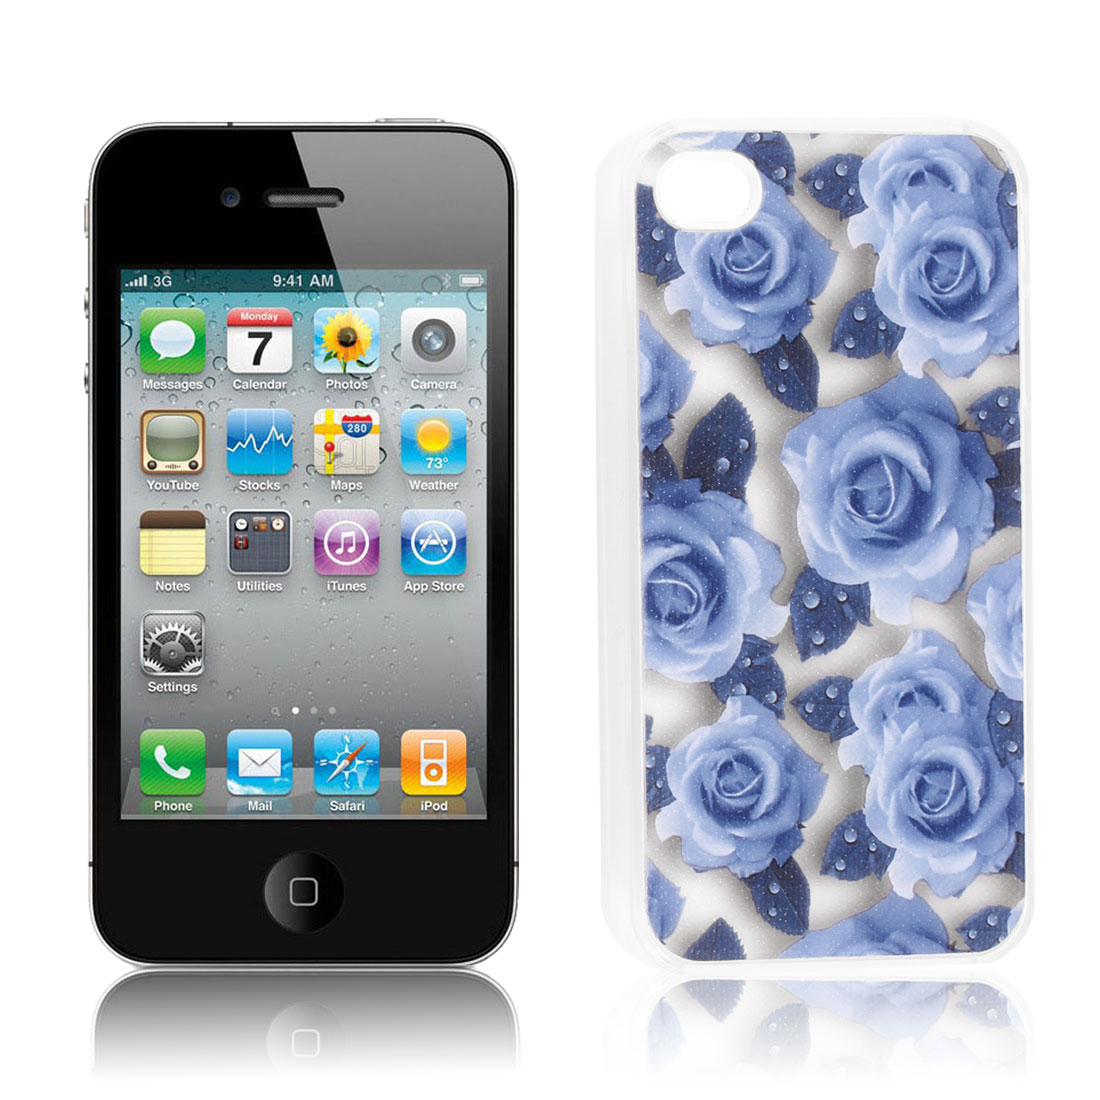 Glittery Powder Light Blue Rose Print Hard Back Case Cover for iPhone 4G 4S 4 4GS